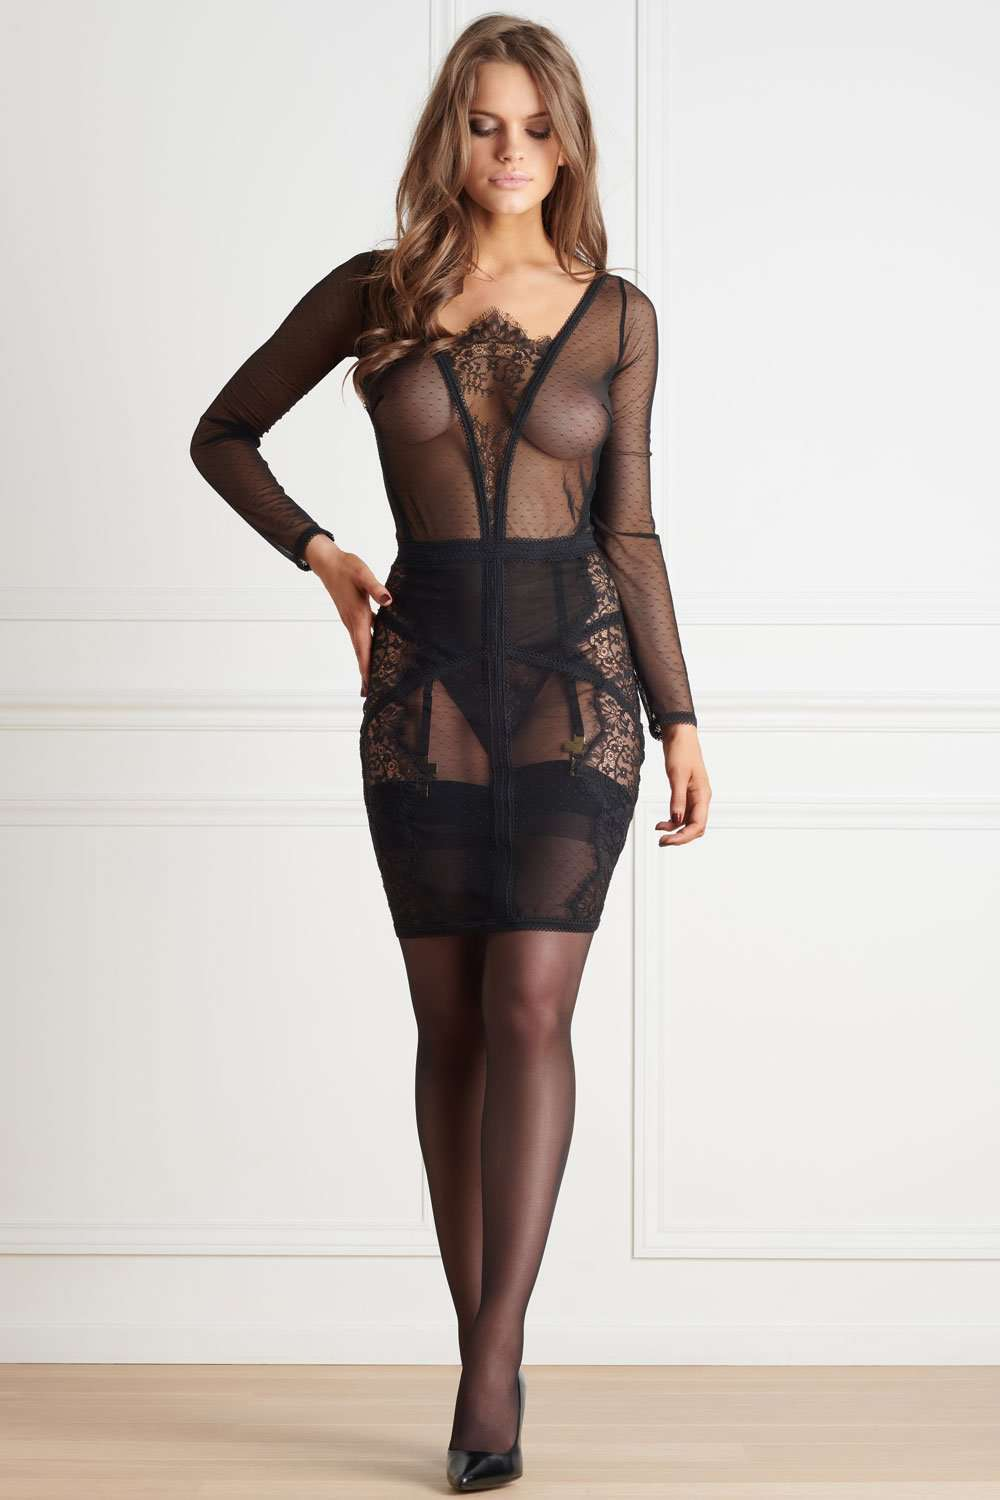 Maison Close - Long Sleeve Dress - Midi Dress - Naughty Knickers